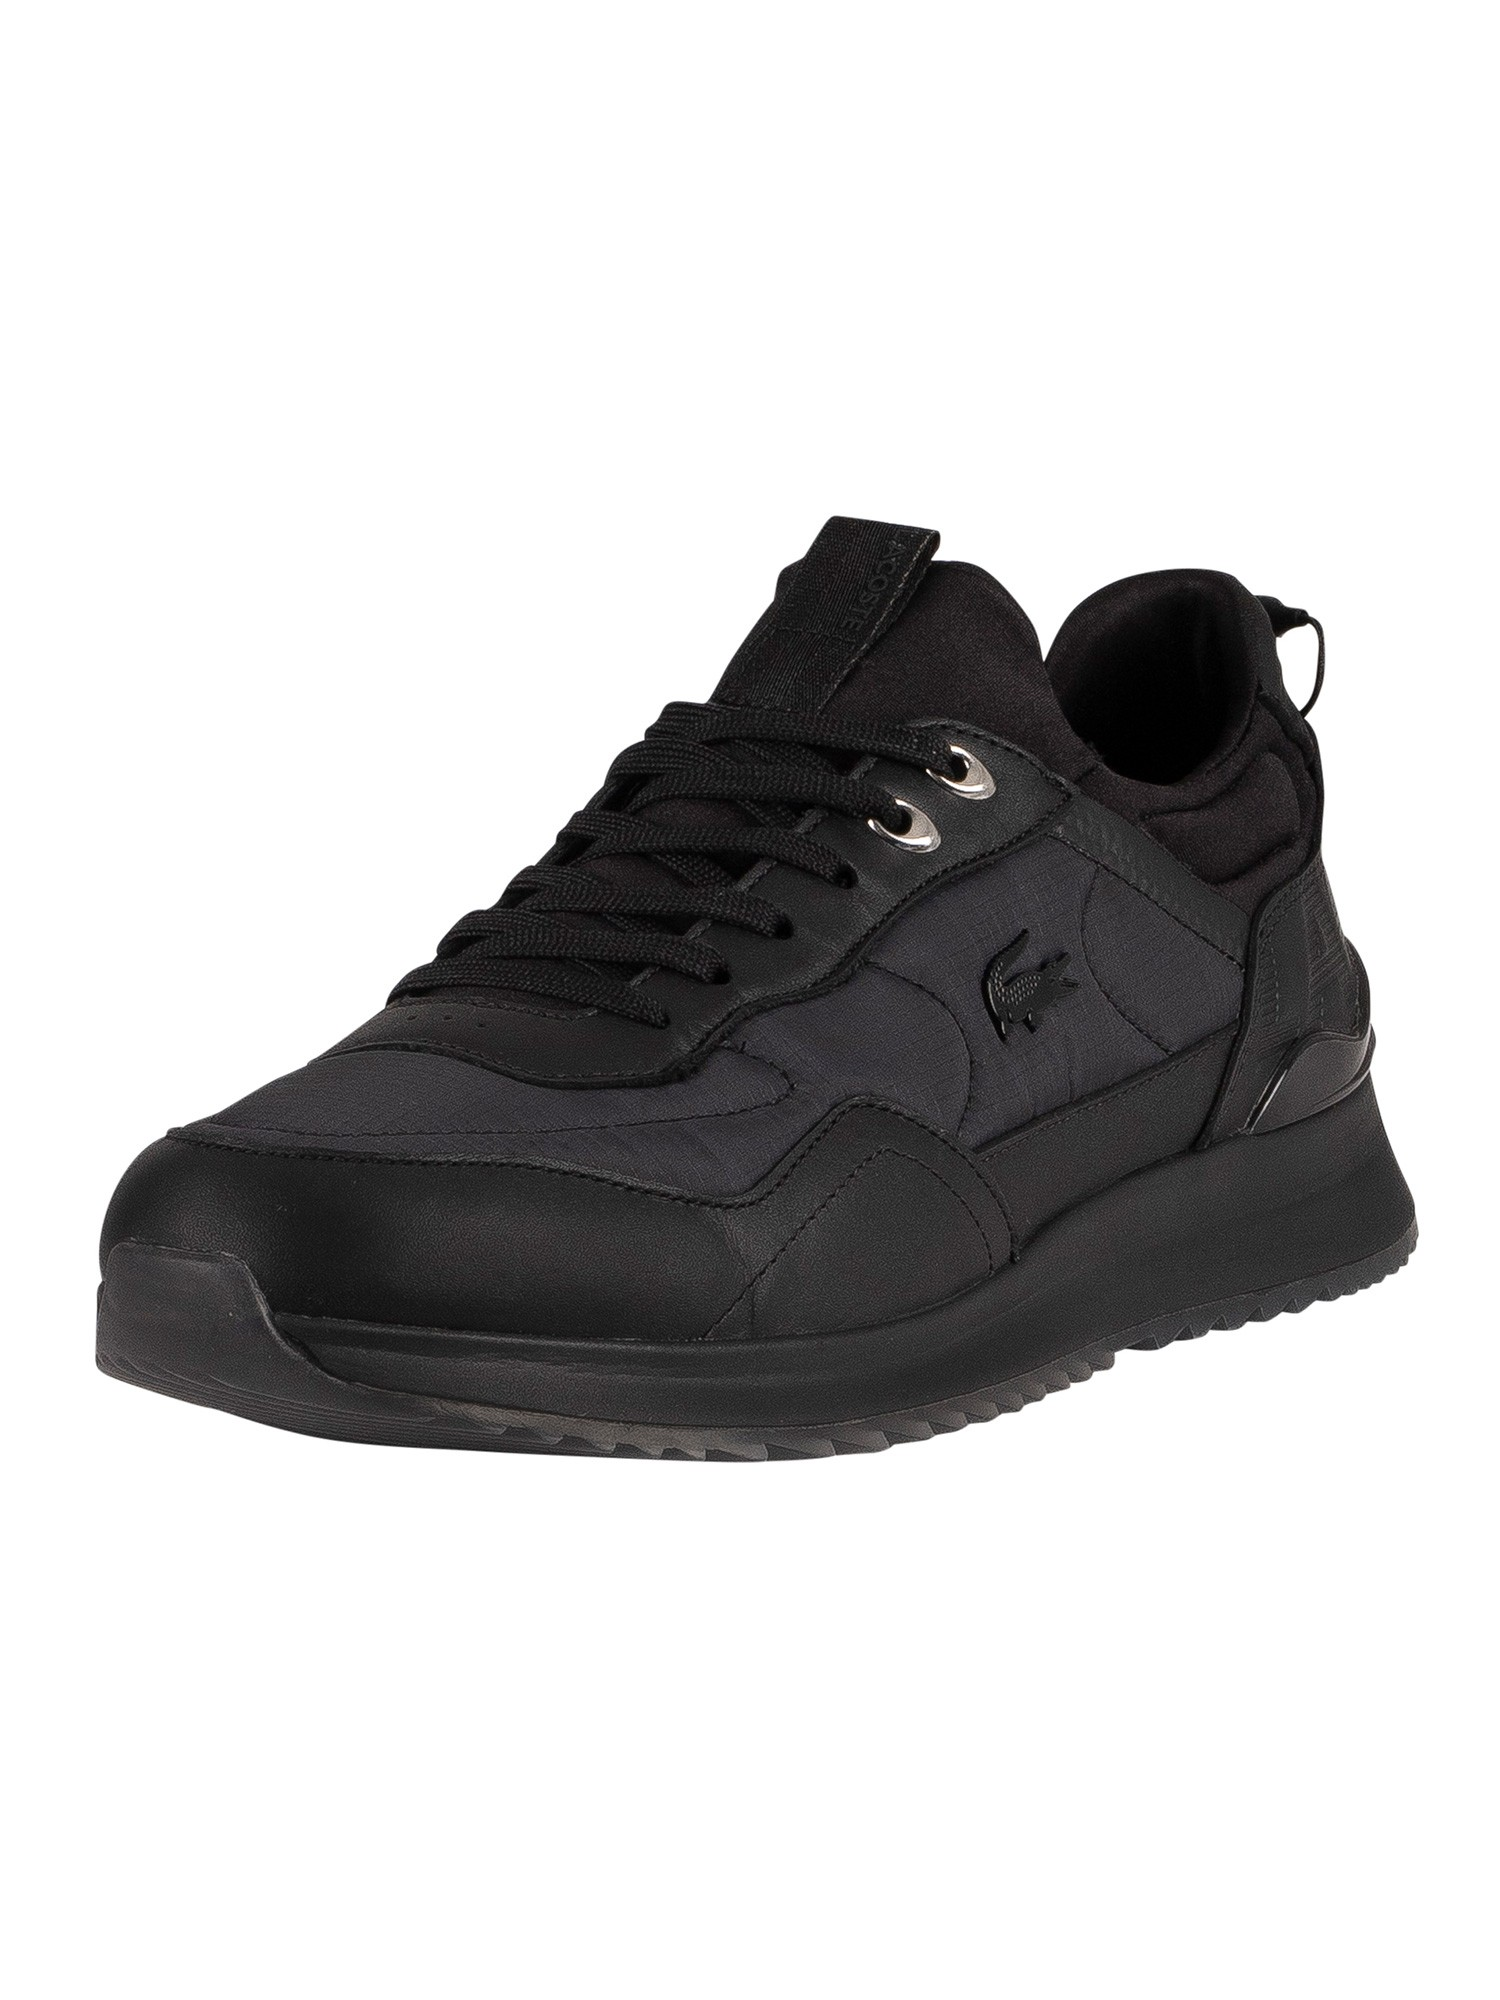 Joggeur 3.0 0321 1 SMA Trainers